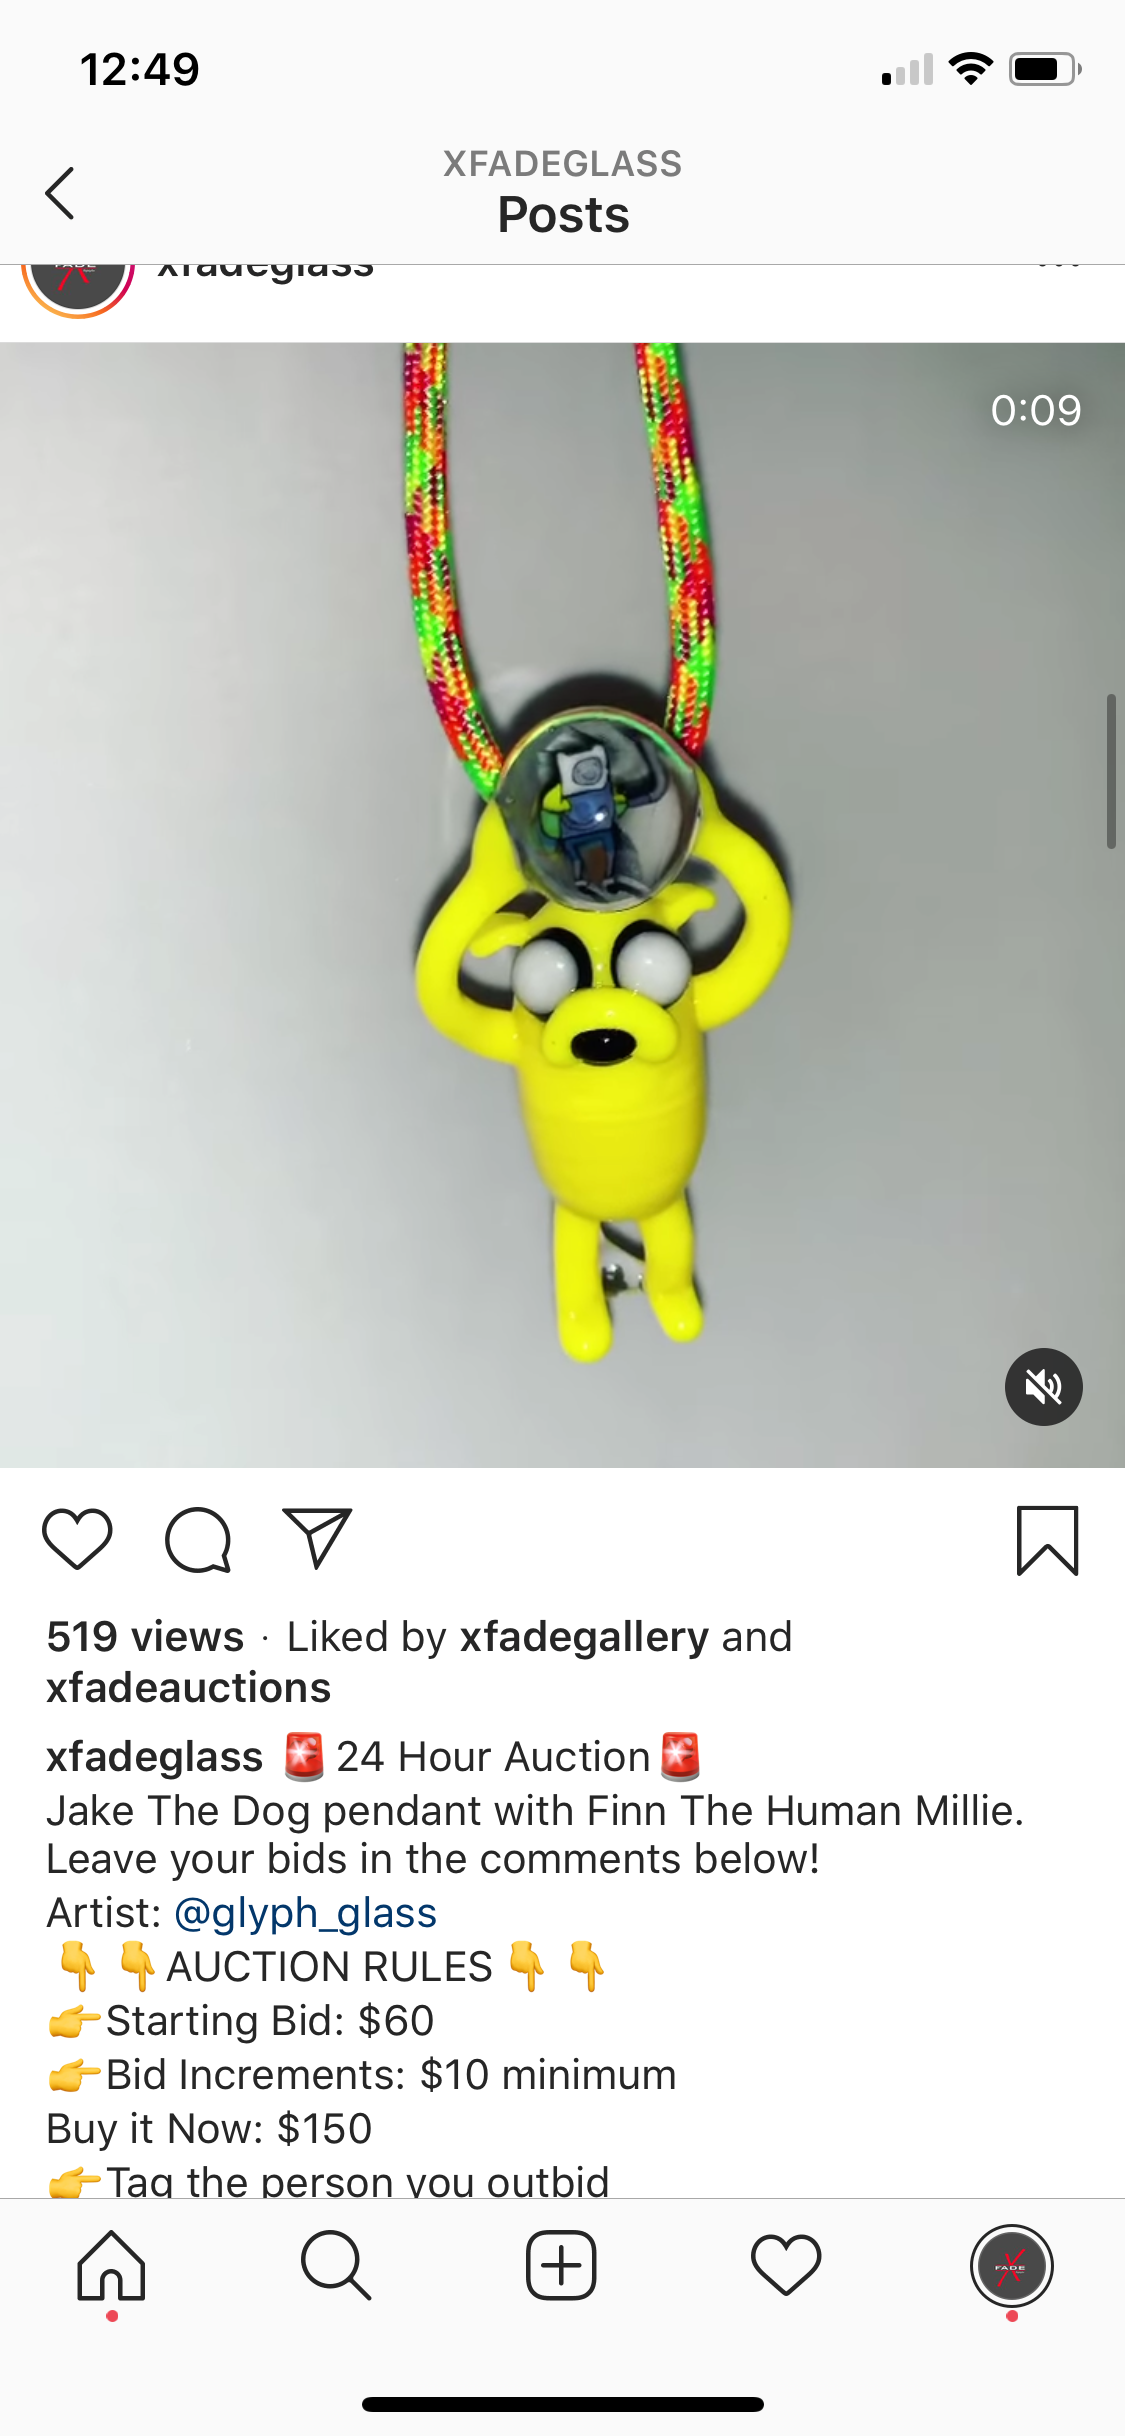 Jake The Dog With Finn Millie Pendy Art